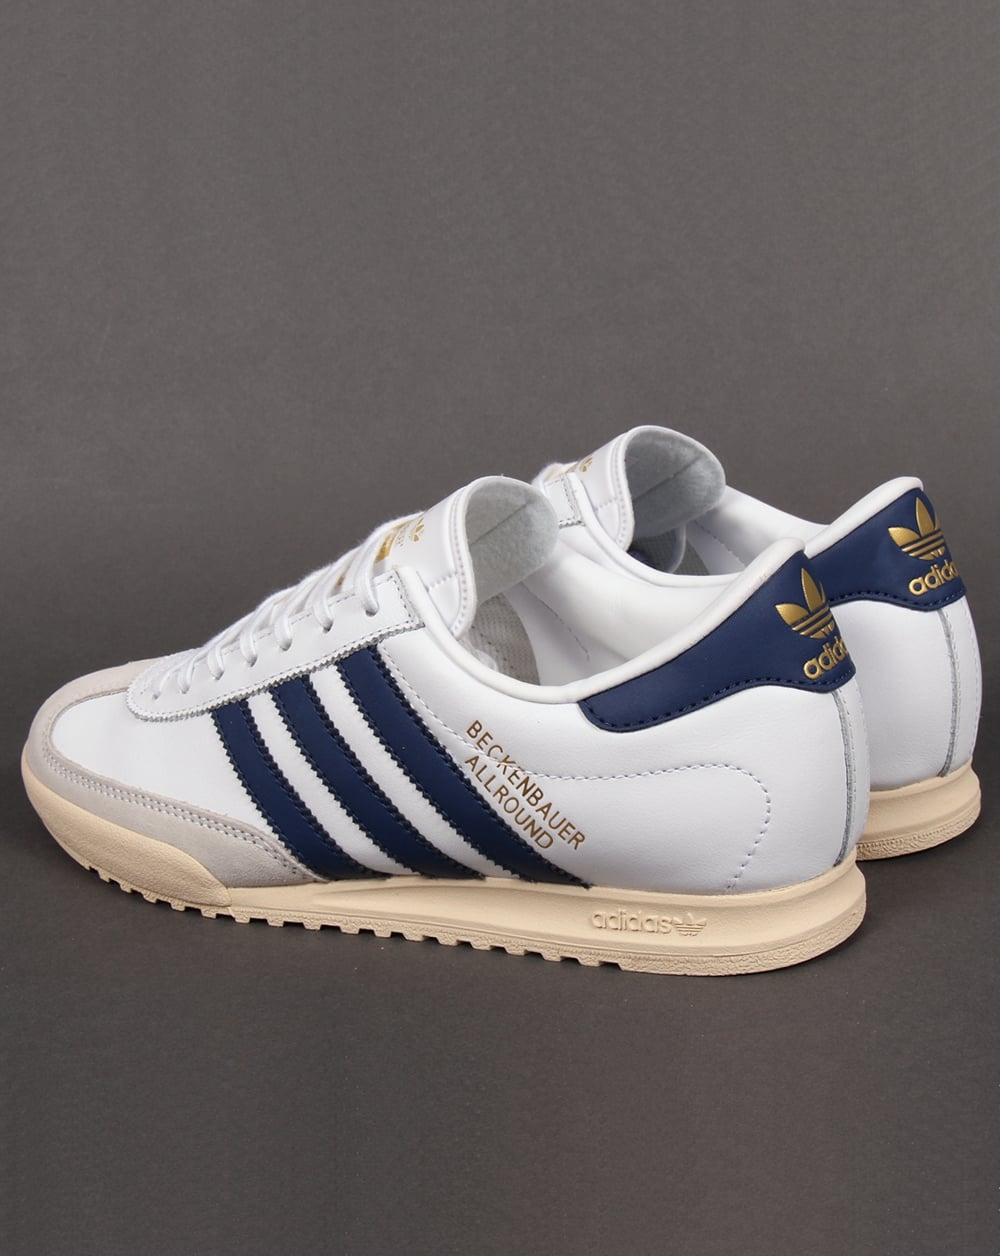 Adidas Beckenbauer Trainers White Navy Gold Originals Allround